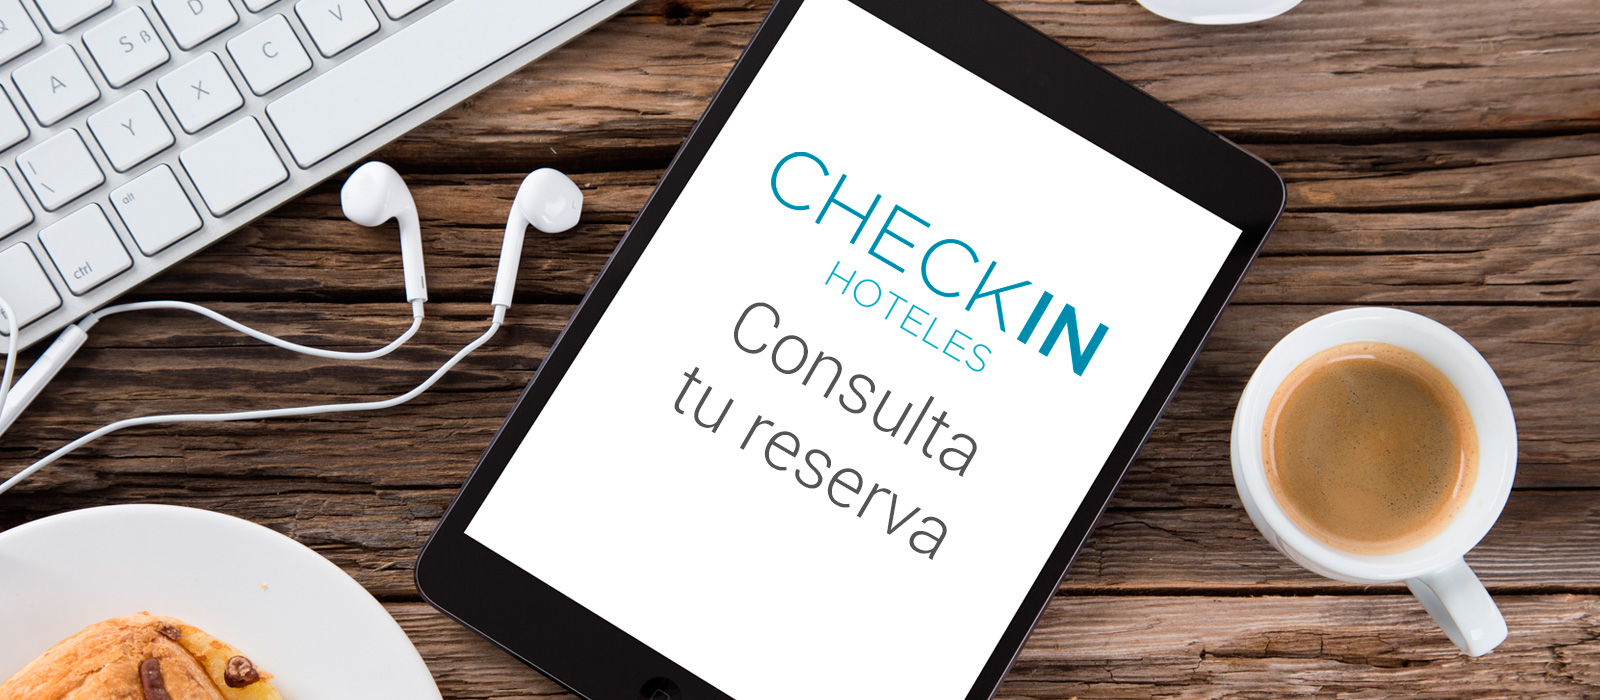 Hotel Checkin Bakour Splash | by Checkin | Web Oficial